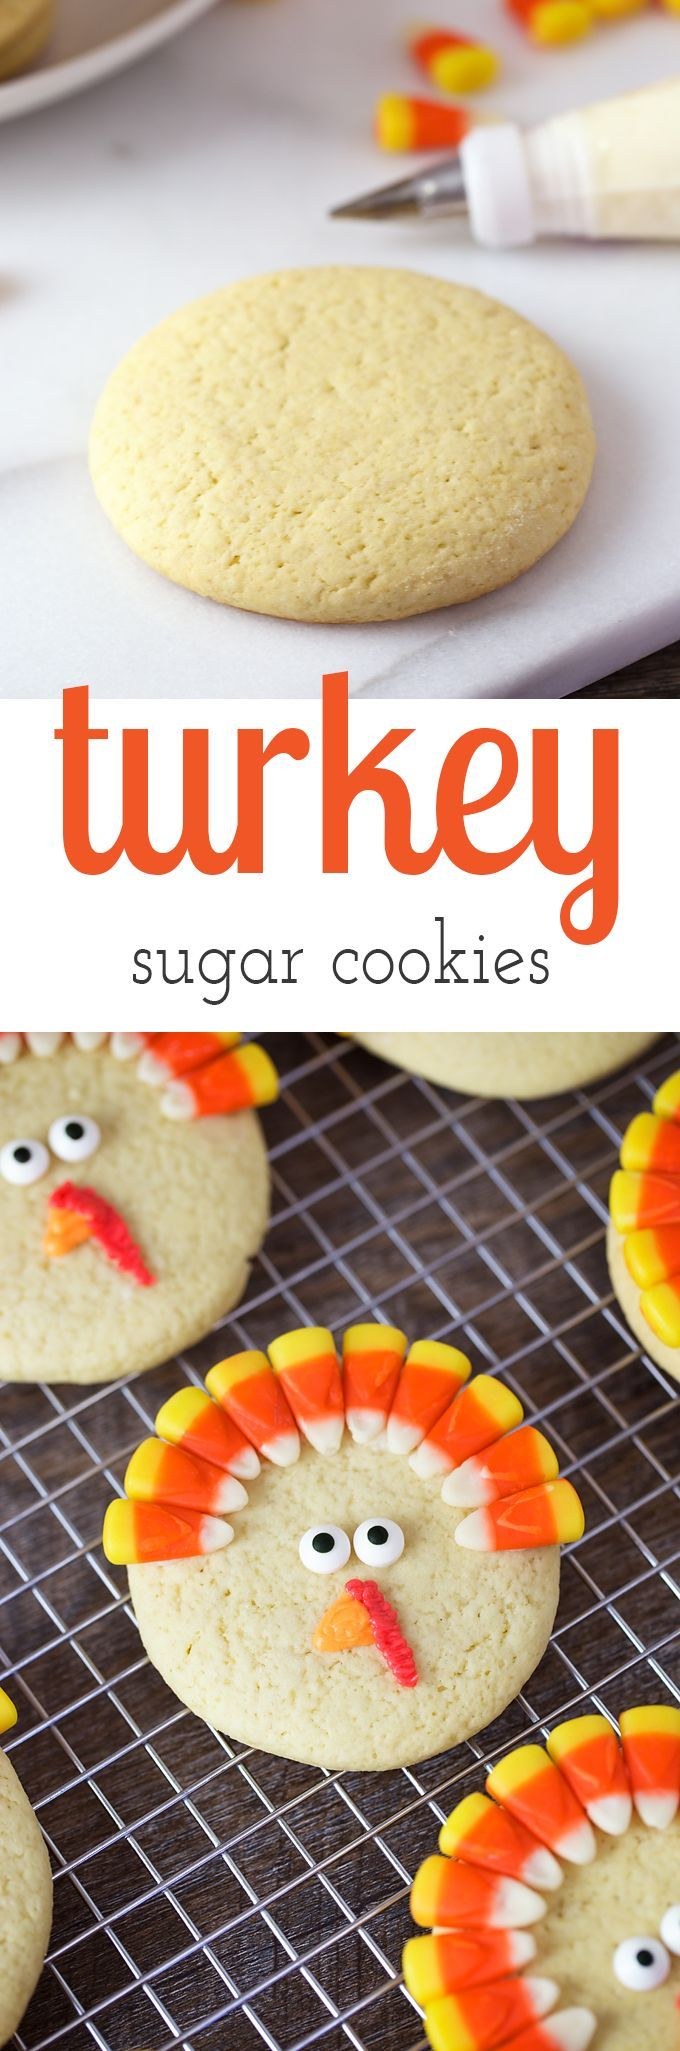 Turkey Sugar Cookies are a playful dessert for Thanksgiving. They are fun to make for parties, lunch boxes, and play dates. via @https://www.pinterest.com/fireflymudpie/